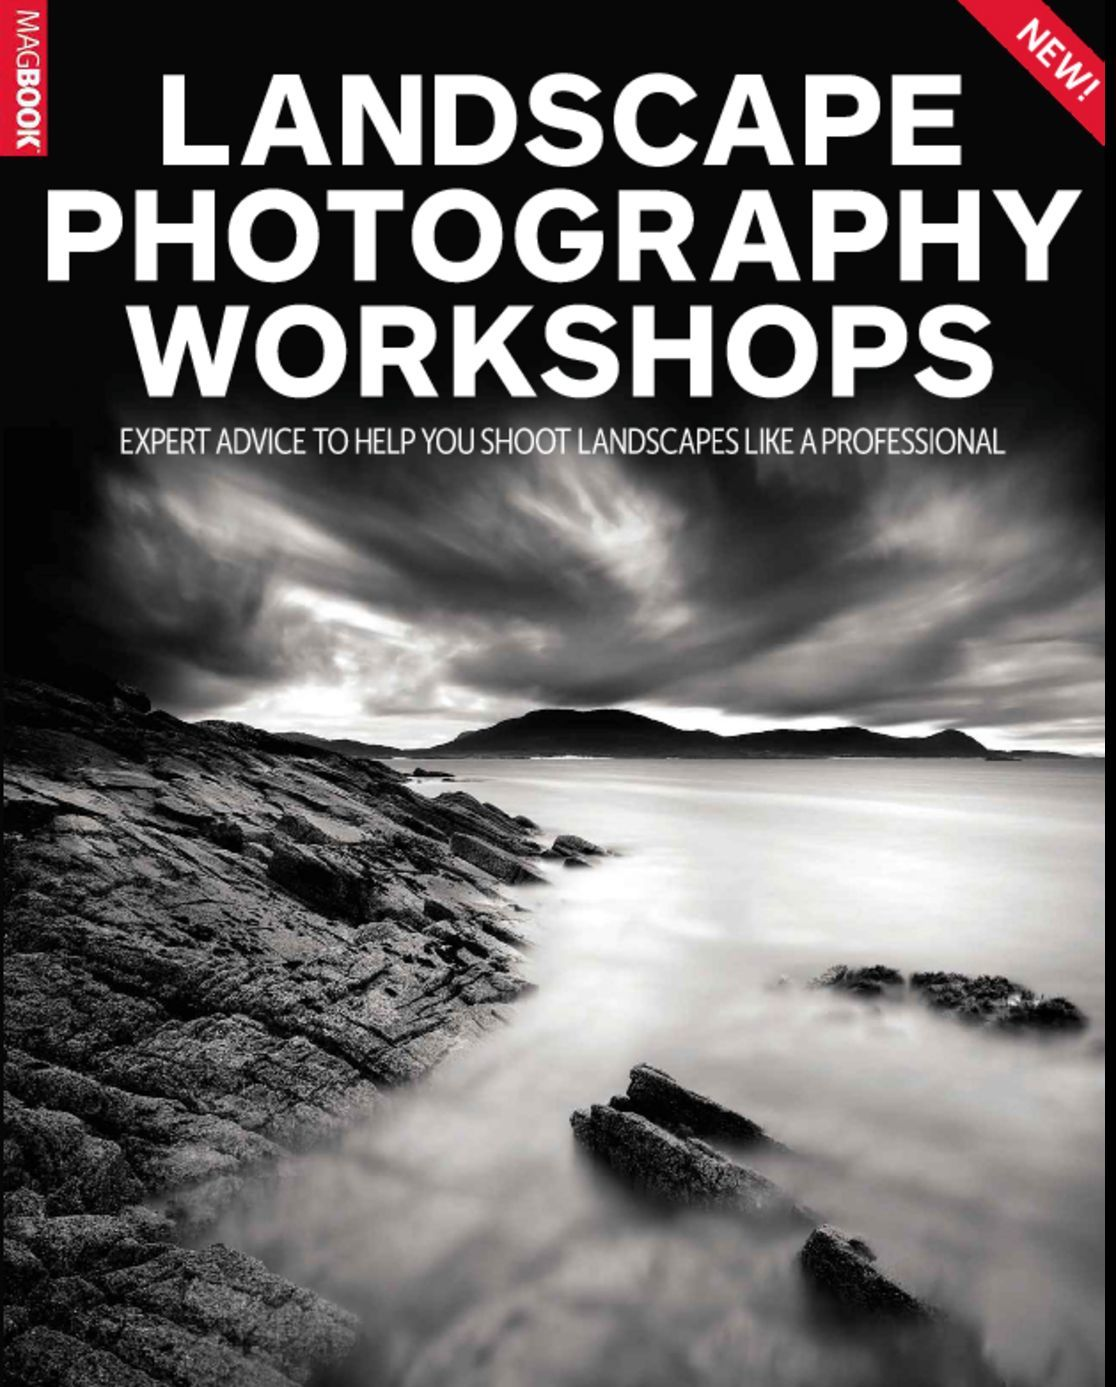 Landscape Photography Workshop Digital